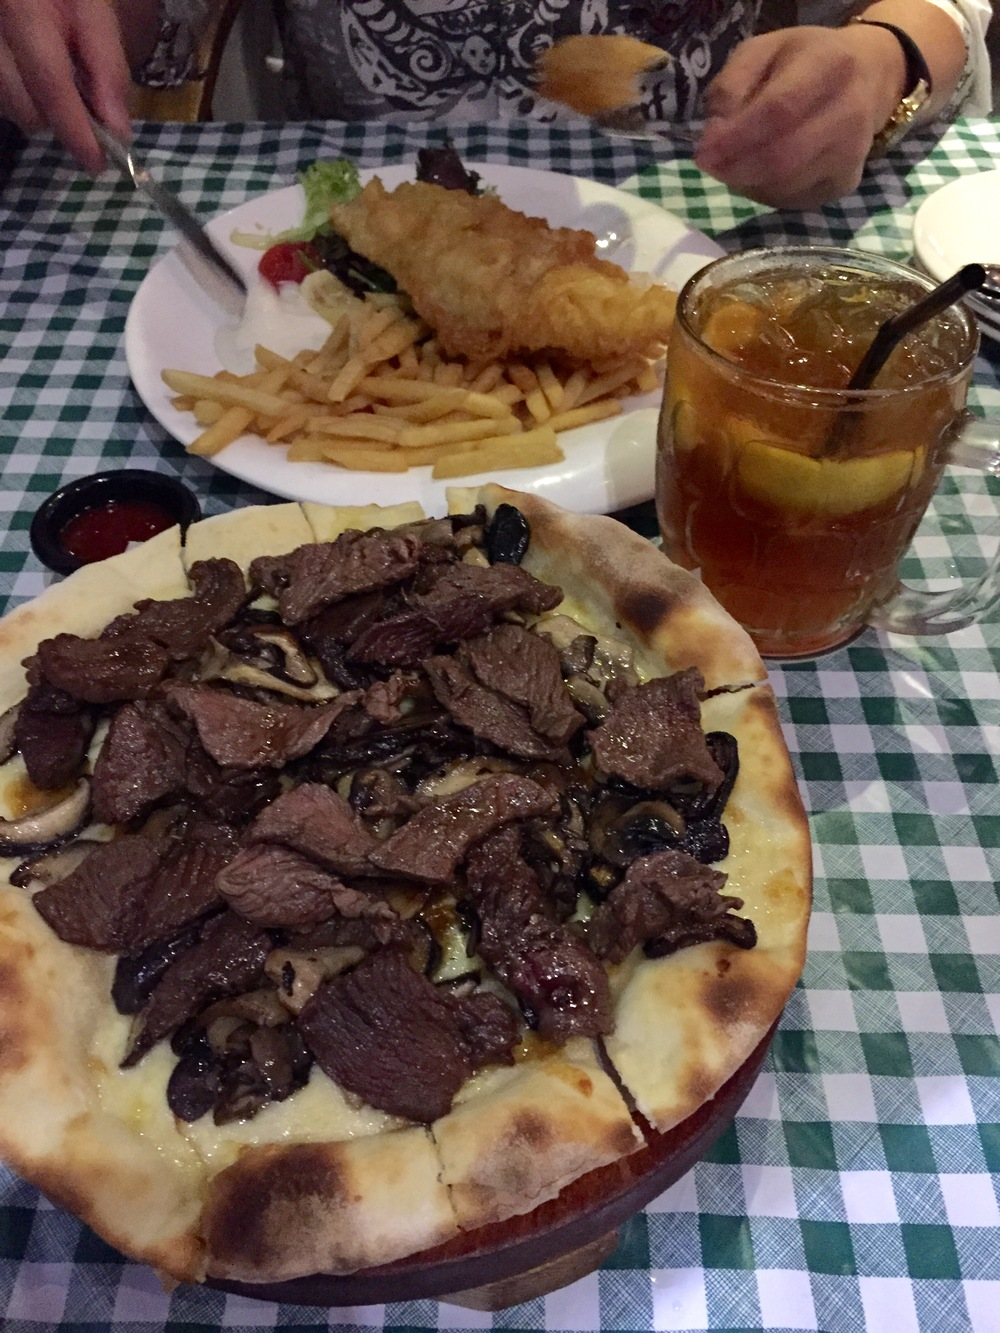 My favourite wagyu beef pizza that is a perfect mix of beef, mushroom,cheese and caramelized onions! Pure bliss...